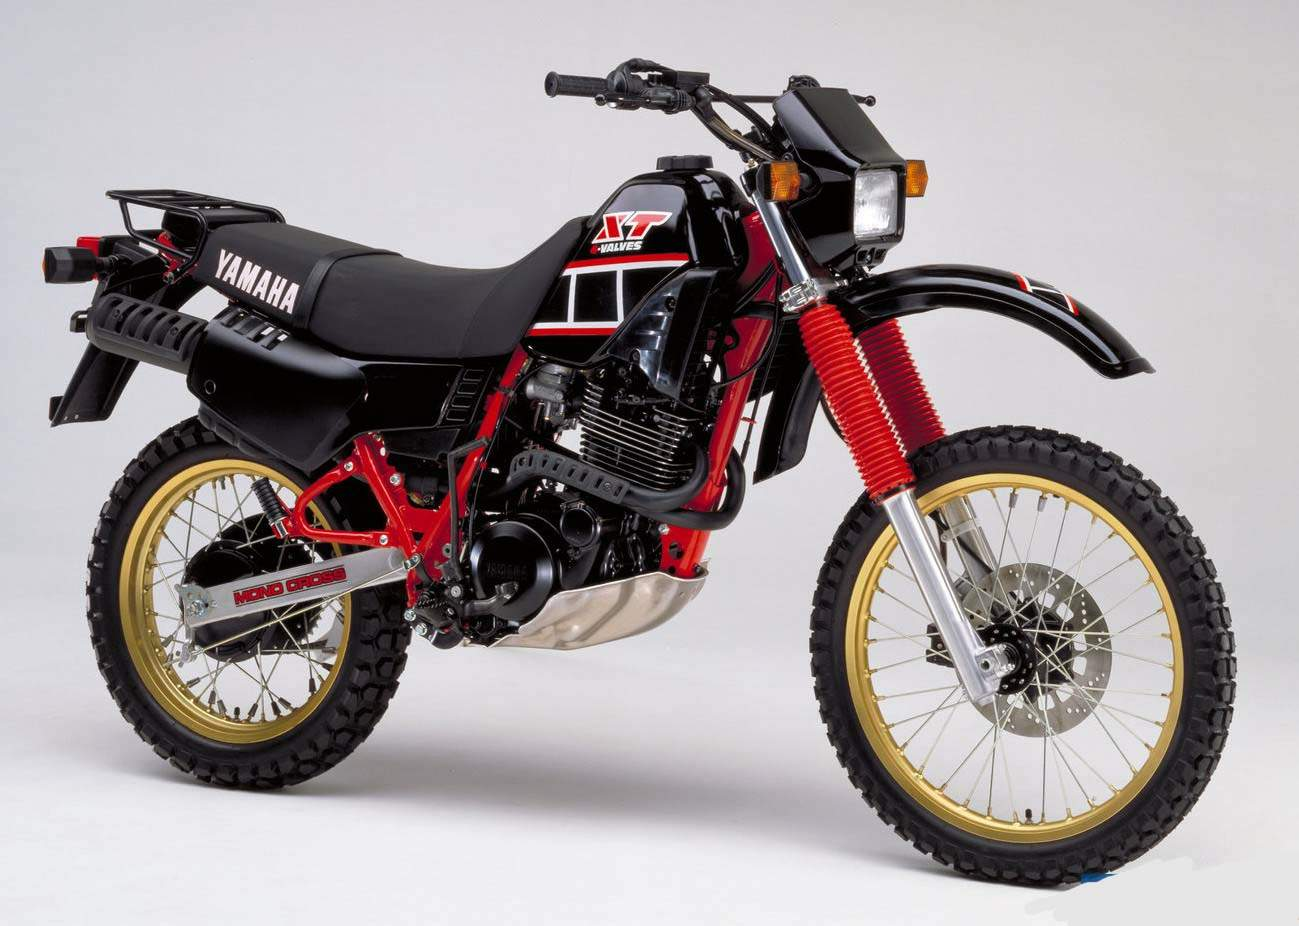 yamaha xt600 xt600e service repair workshop manual 1983 2005 xt 600 e ebay. Black Bedroom Furniture Sets. Home Design Ideas